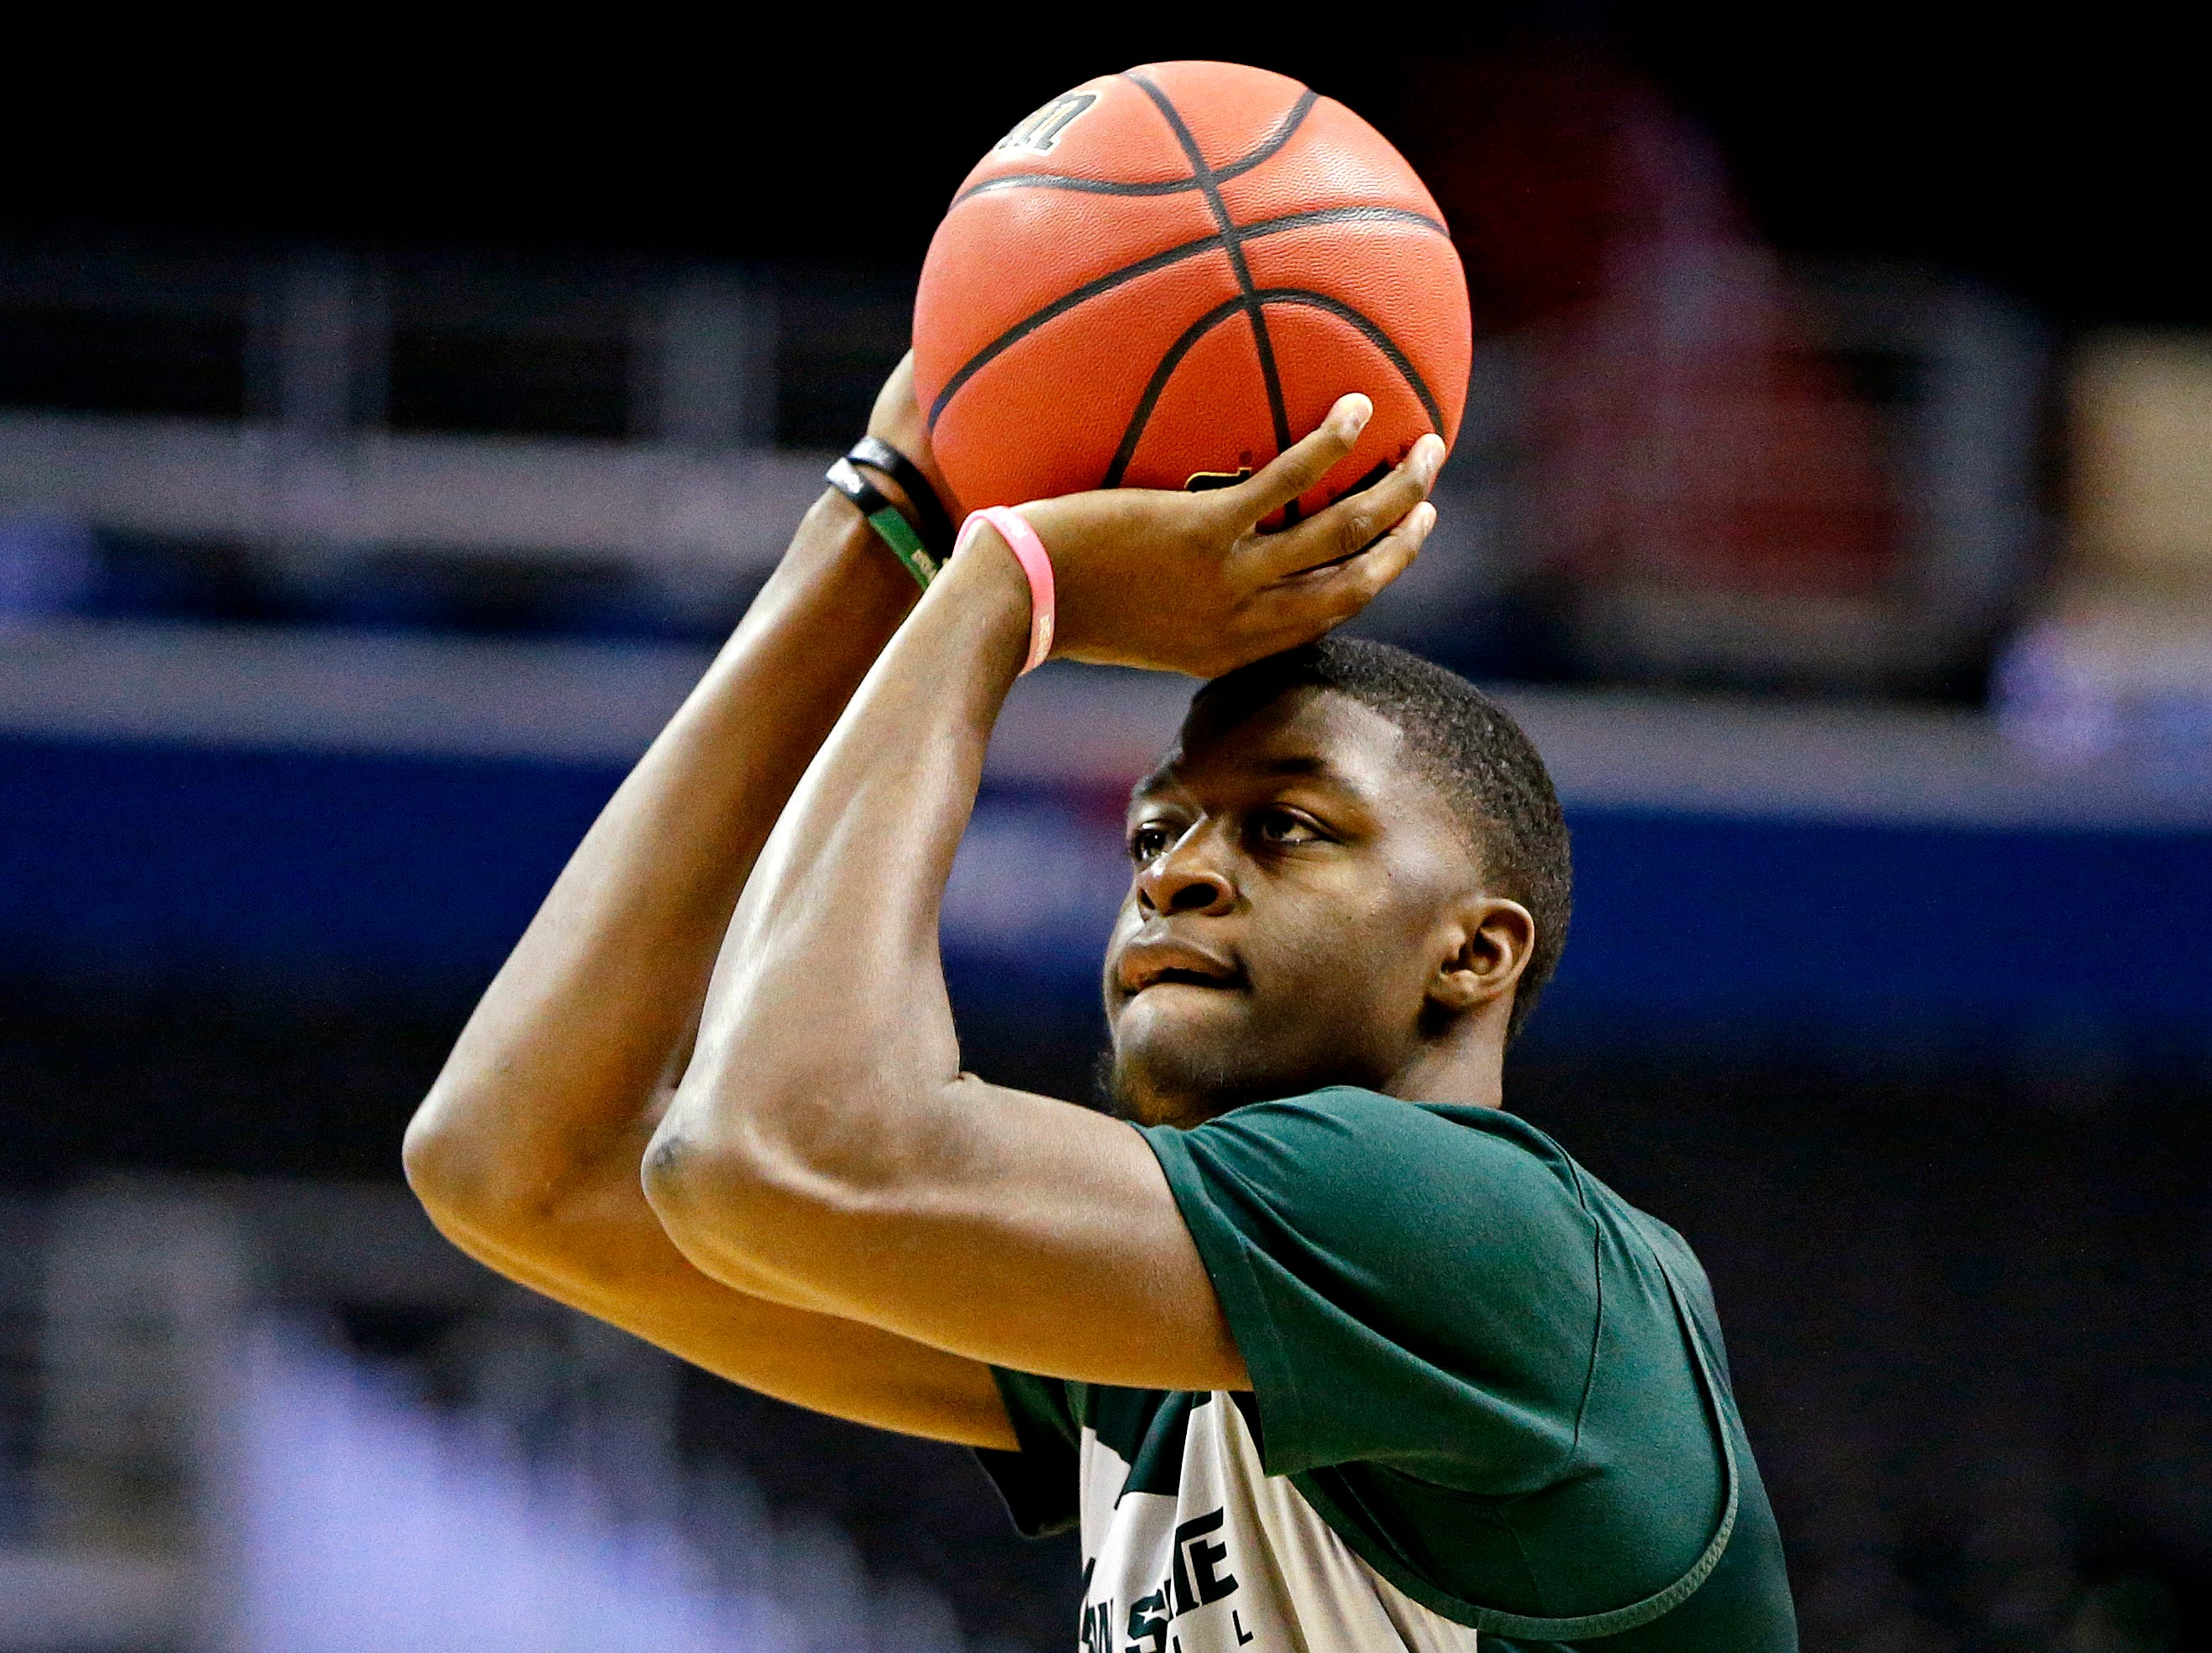 Mar 28, 2019; Washington, DC, USA; Michigan State Spartans forward Gabe Brown (13) shoots the ball during practice for the east regional of the 2019 NCAA Tournament at Capital One Arena. Mandatory Credit: Amber Searls-USA TODAY Sports